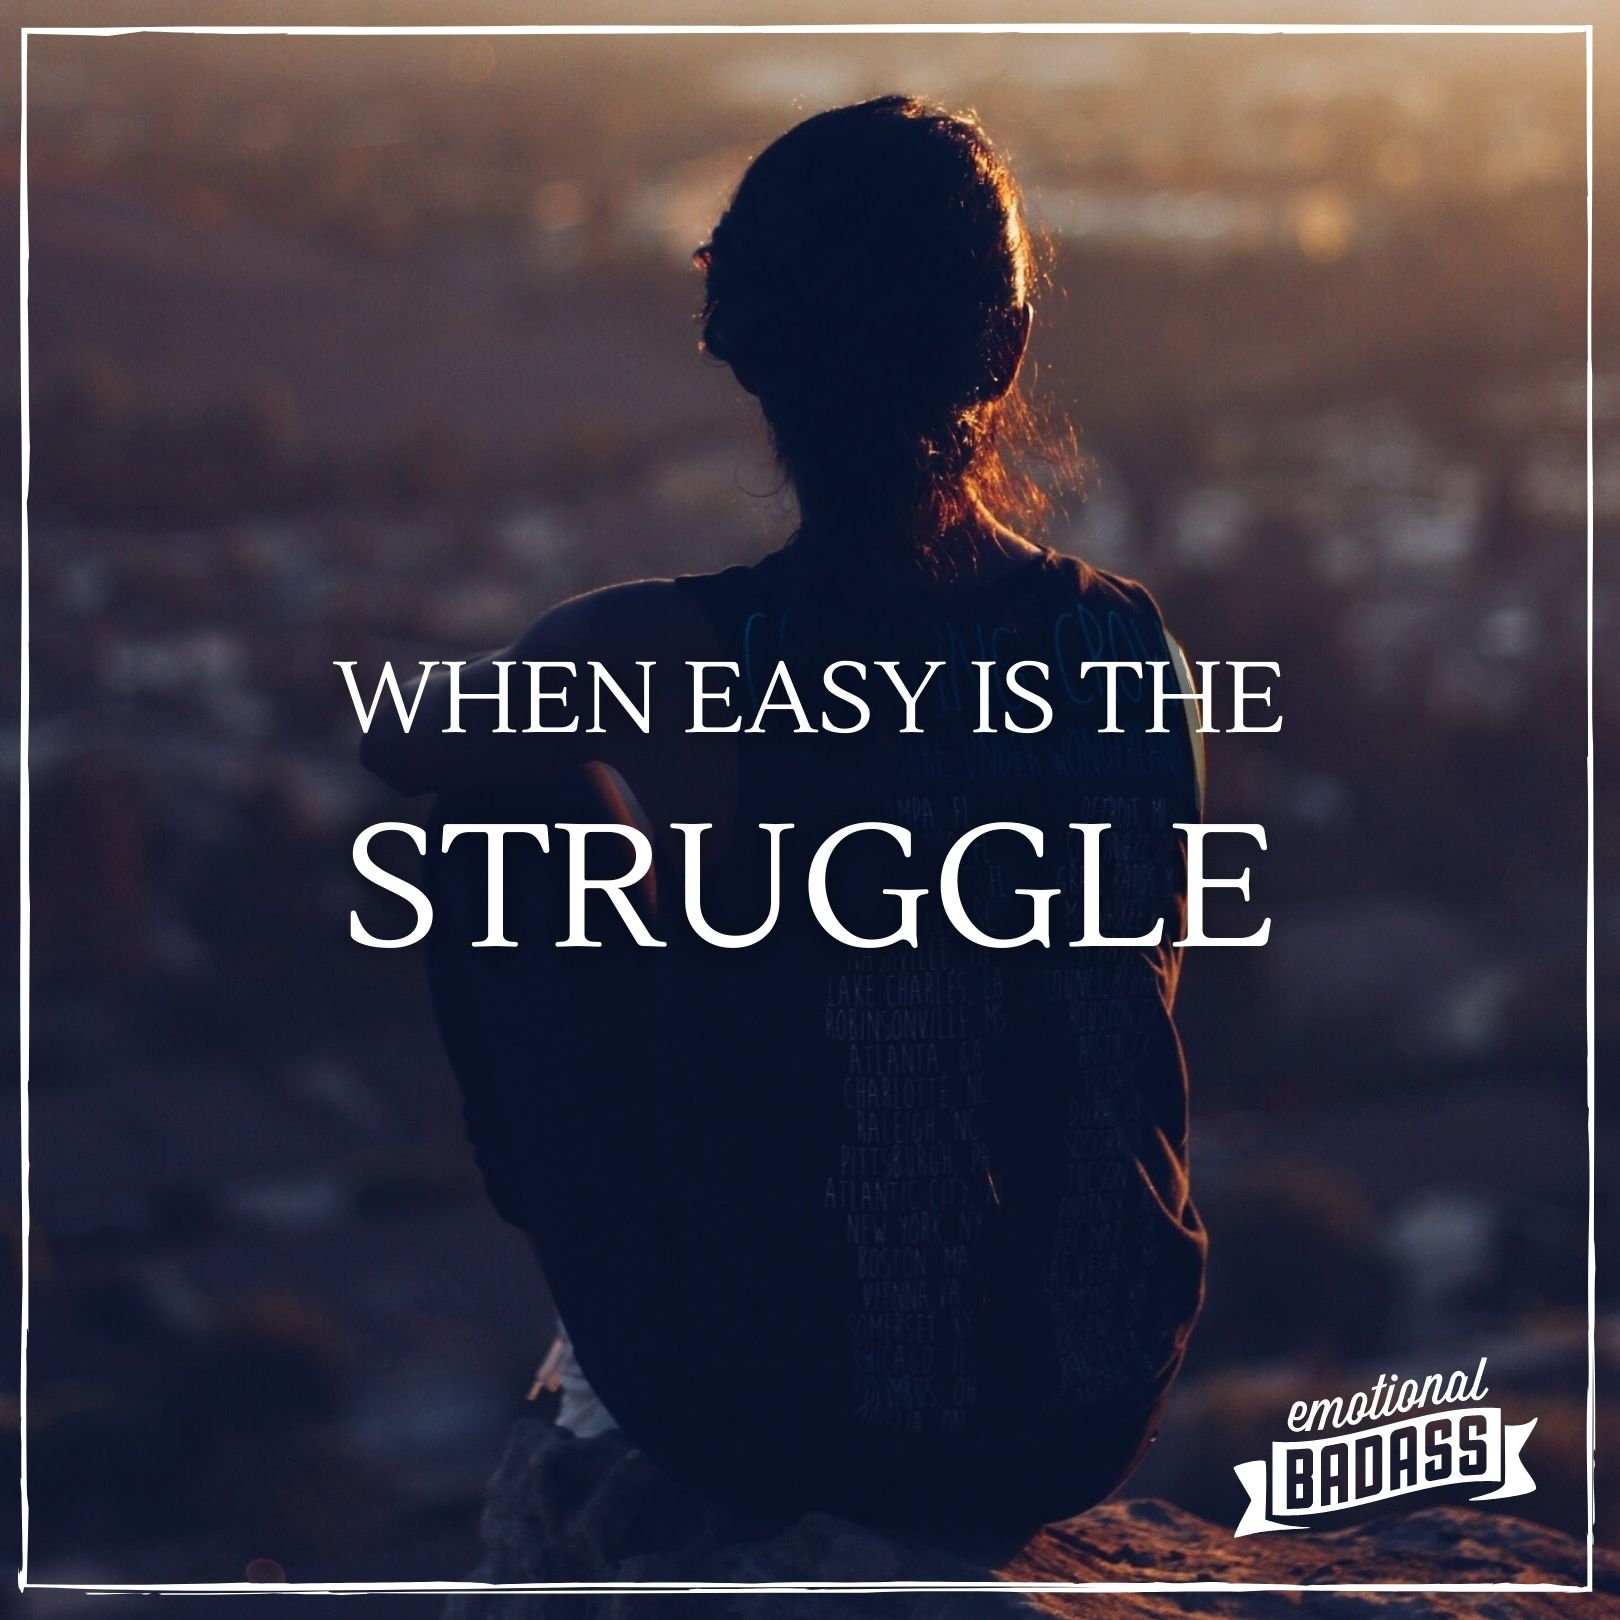 When Easy is the Struggle